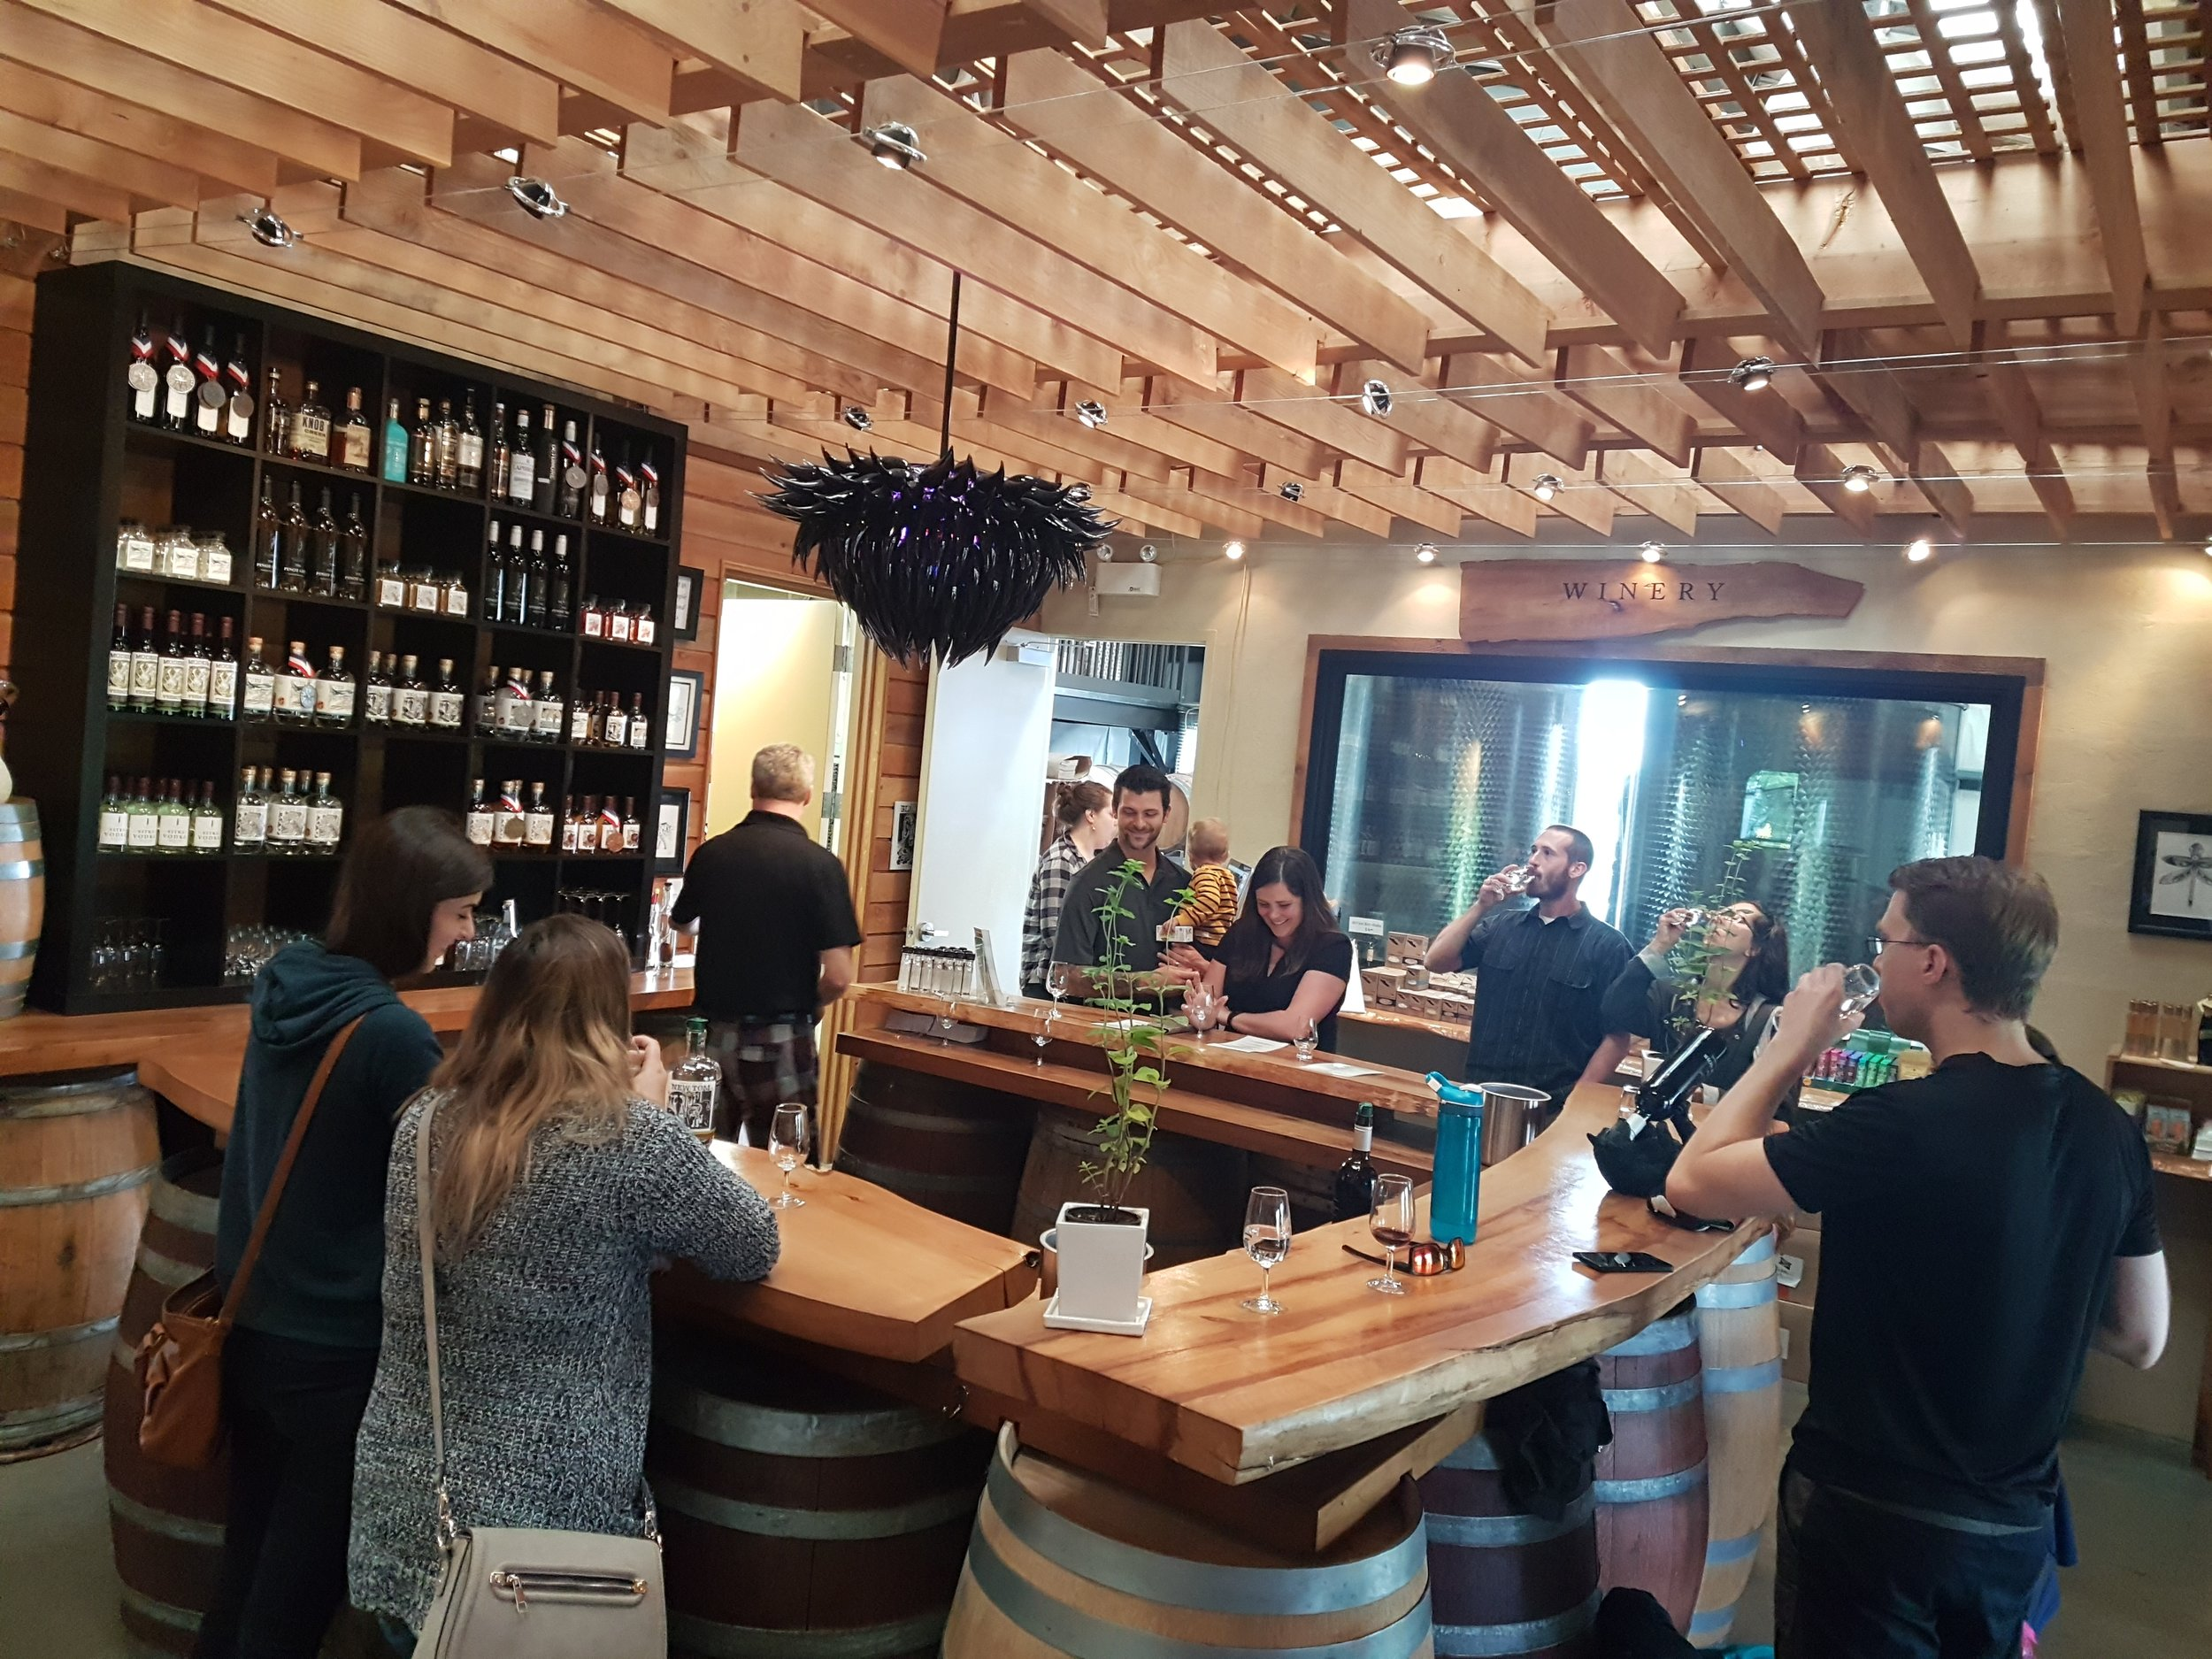 Enjoying some of the local wines at Devine Vineyards after a day in the saddle!